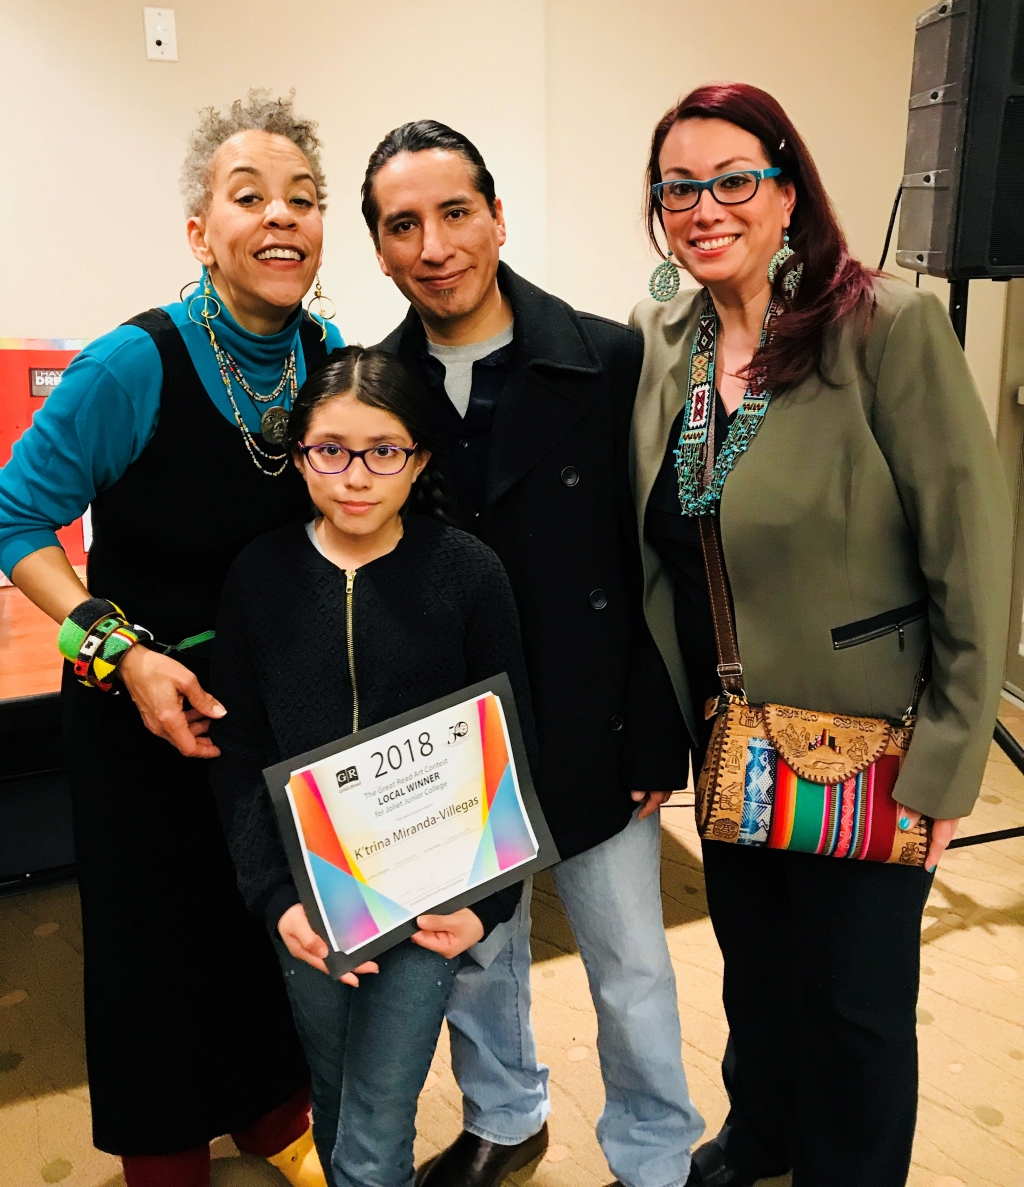 Musician Maggie Brown with JJC art contest winner K'trina Miranda Villegas and her family.